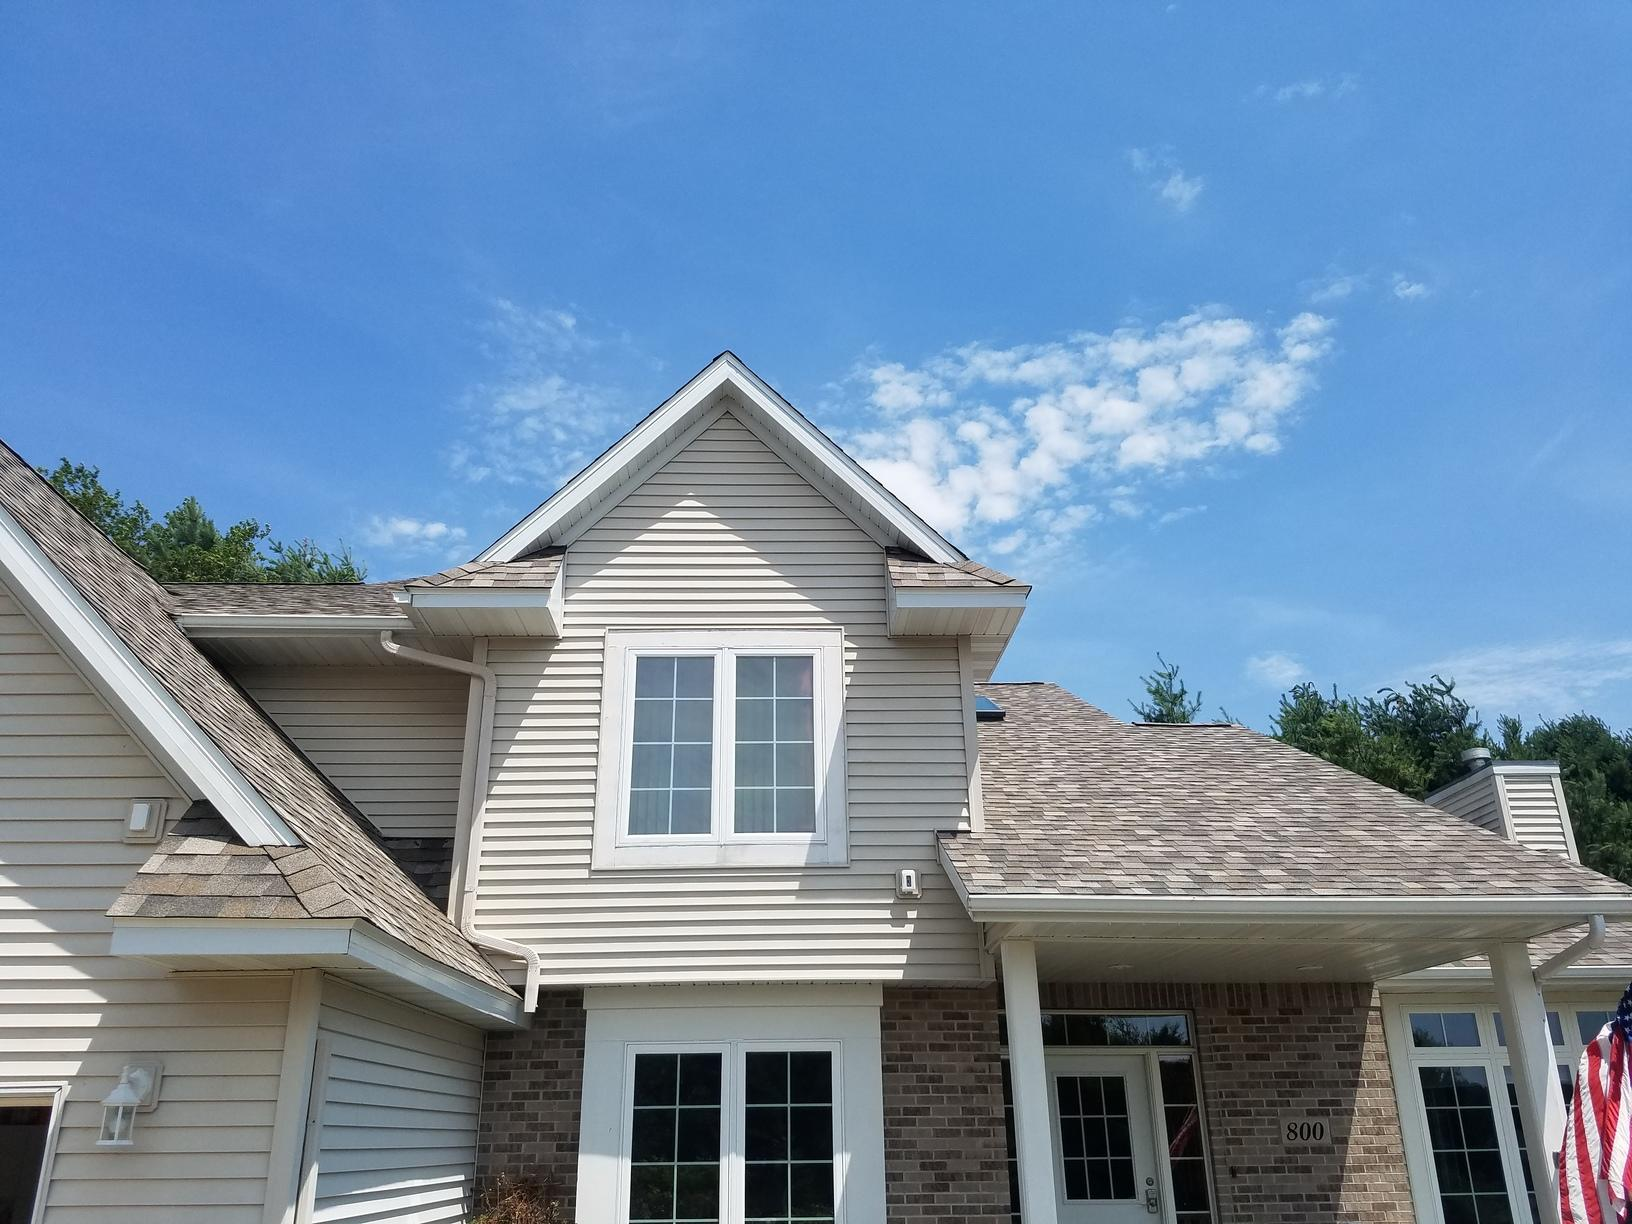 Roof replacement in Stettin WI - After Photo